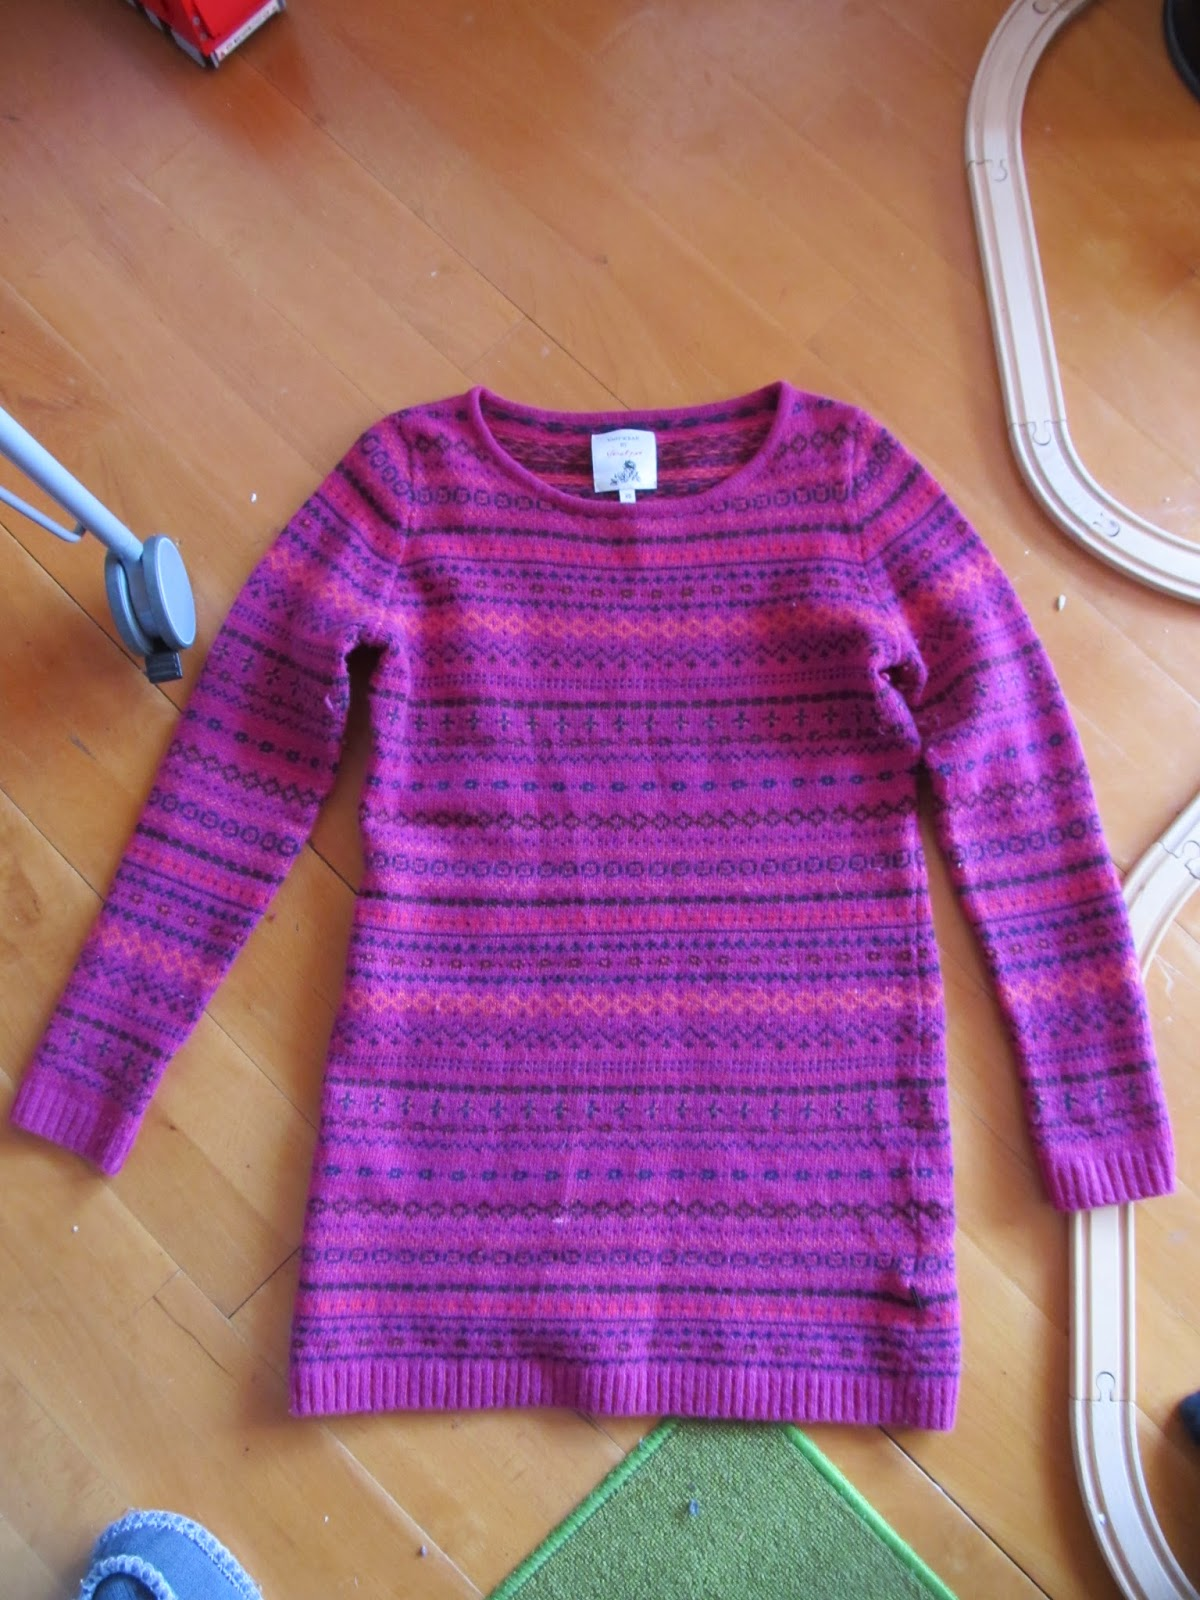 Wool Sweater Too Small 2